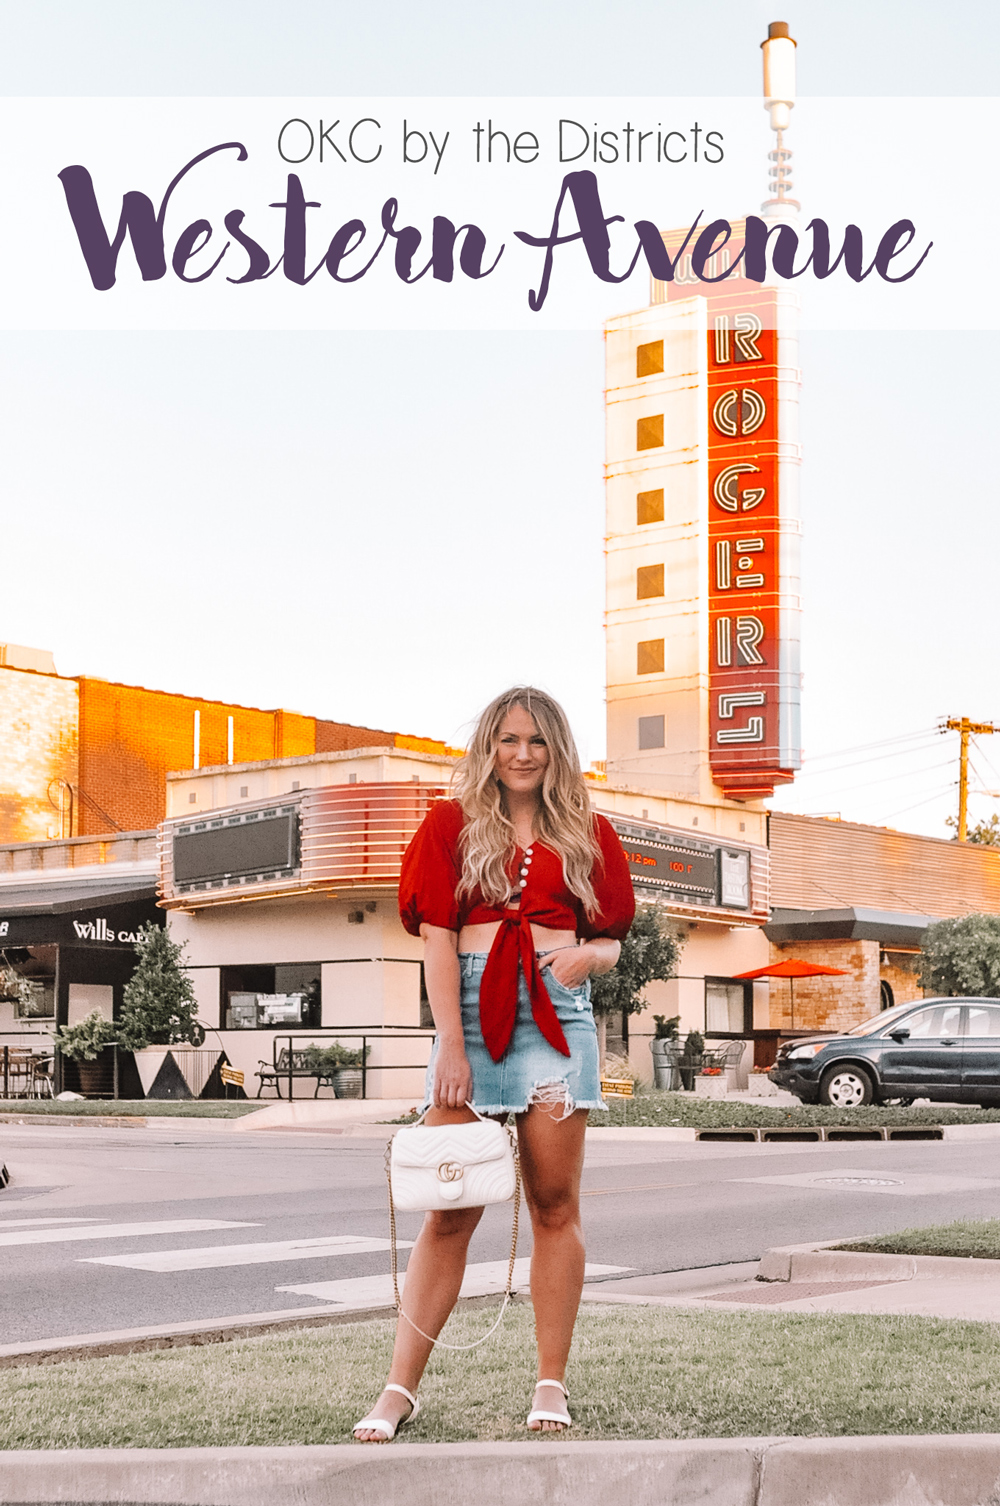 Oklahoma City blogger Amanda's OK shares her favorite spots in the Western Avenue District